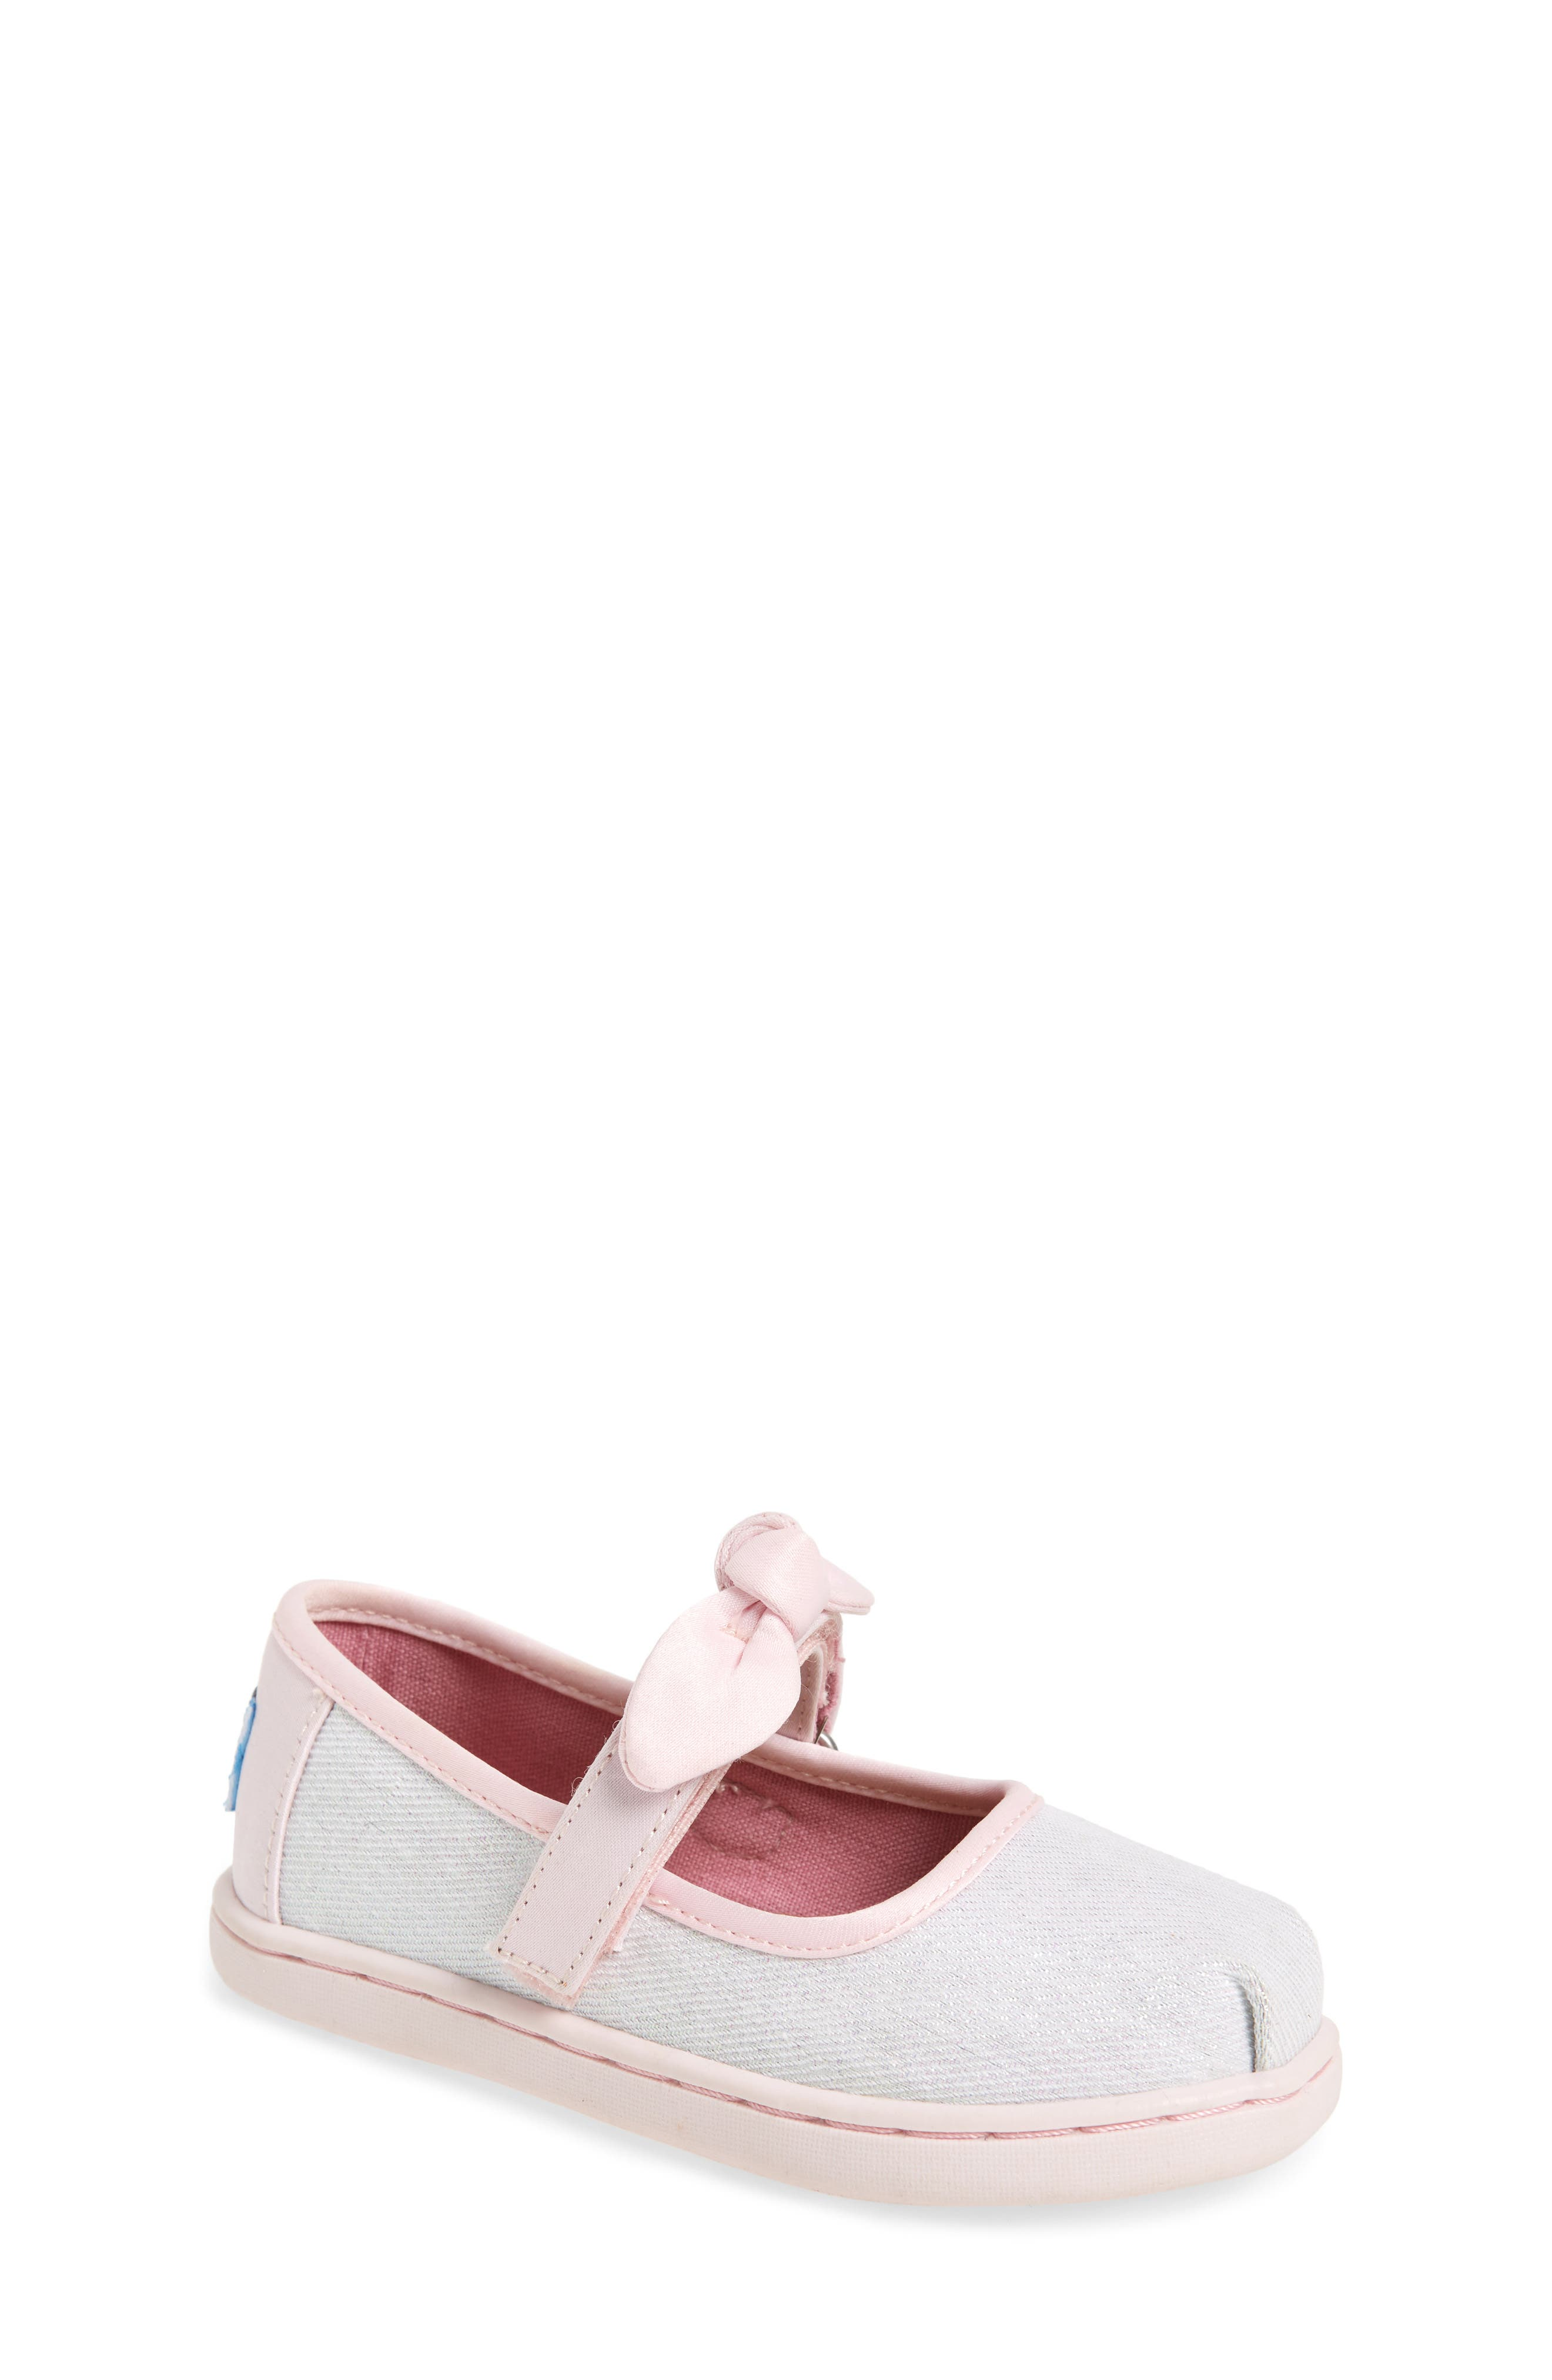 Bow Metallic Mary Jane Sneaker,                         Main,                         color, IRIDESCENT TWILL GLIMMER